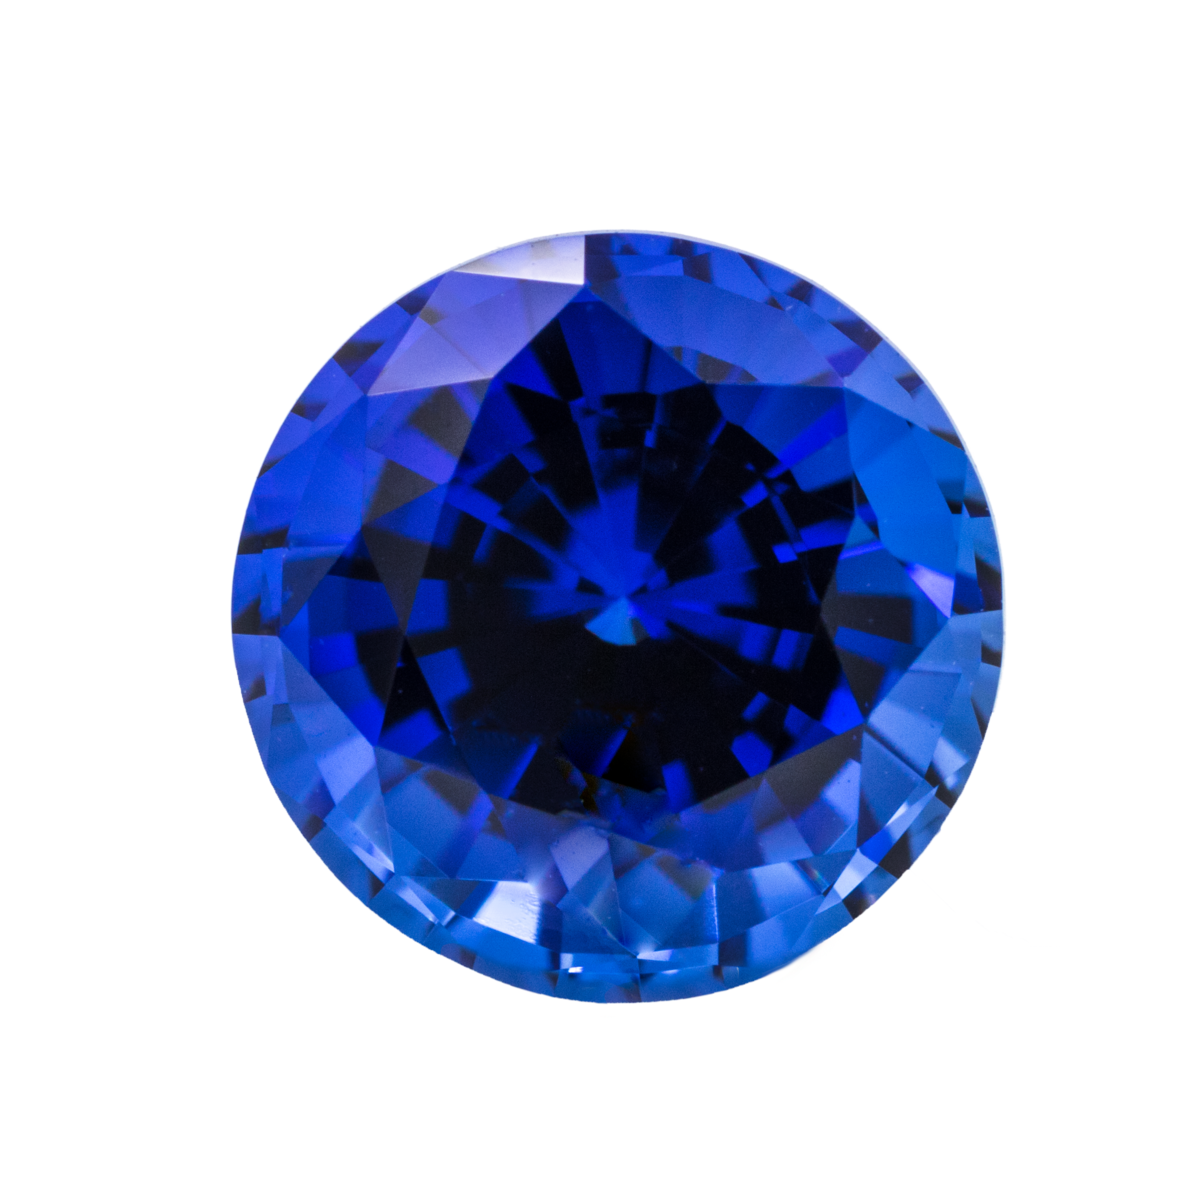 of diamond blue this the than with ring a permission fine gemstones in ct tanzanite rarer society cost rivals custommade that used article cut deep international cushion sapphire ten gem